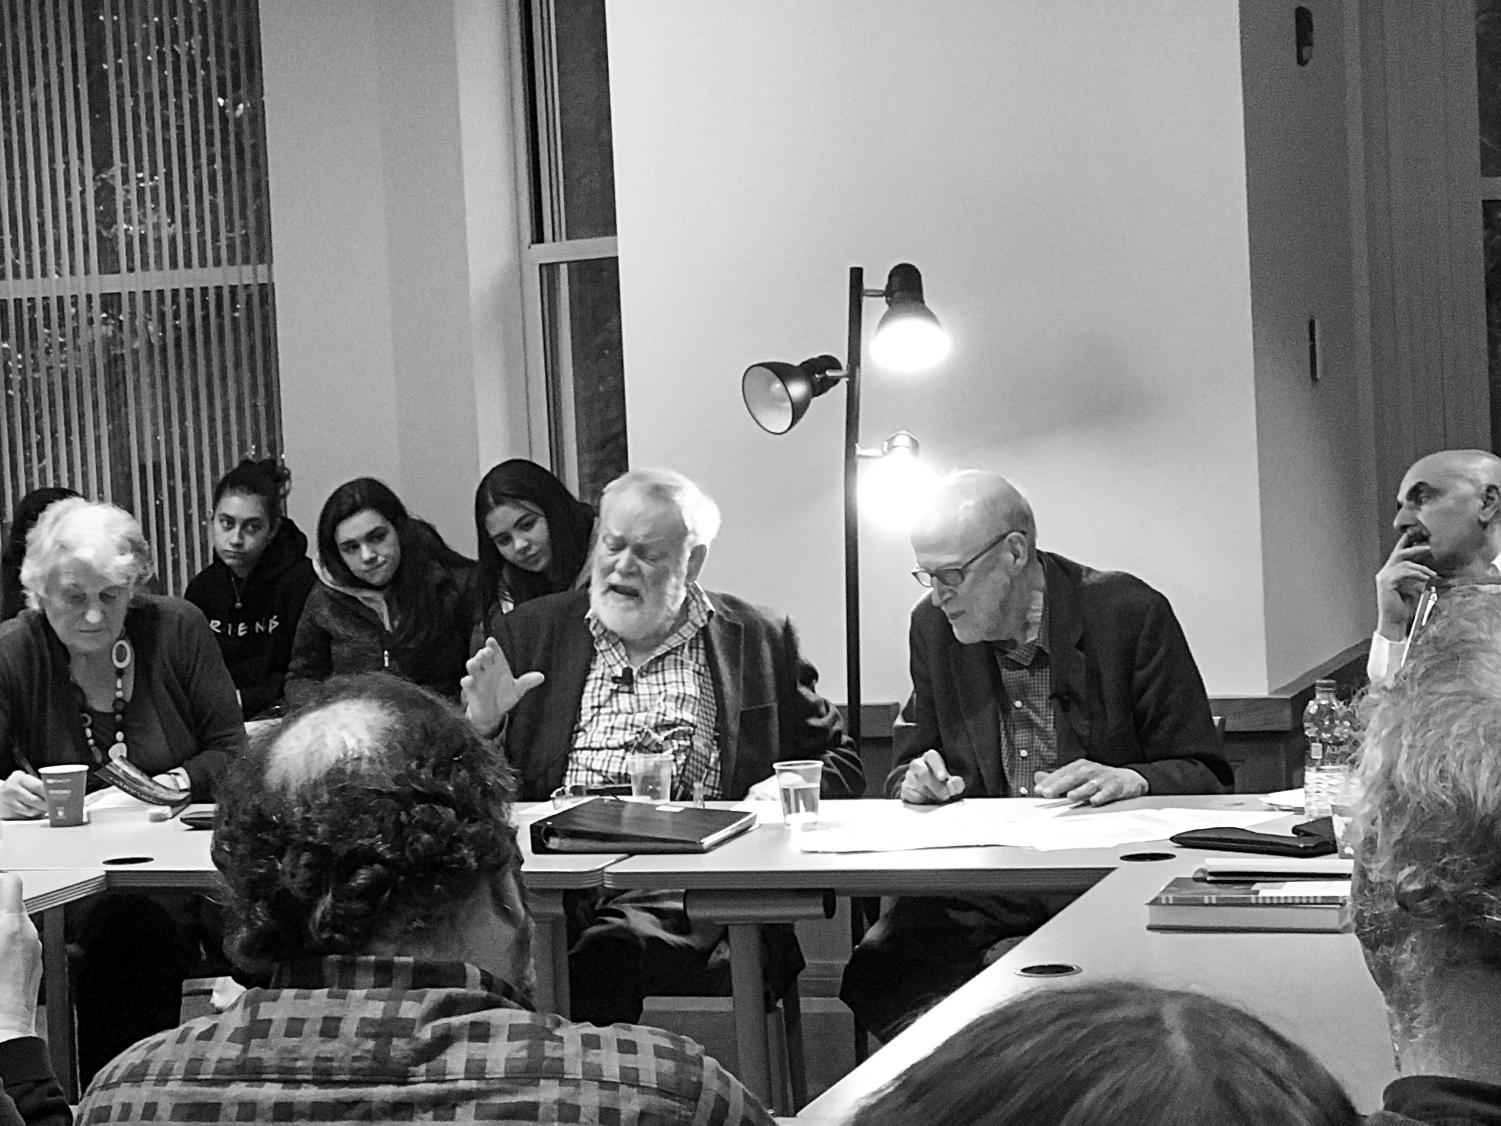 Poets Michael Longley and David Ferry inside the Poetry Center on Oct. 10 reading excerpts of famous literature to the audience